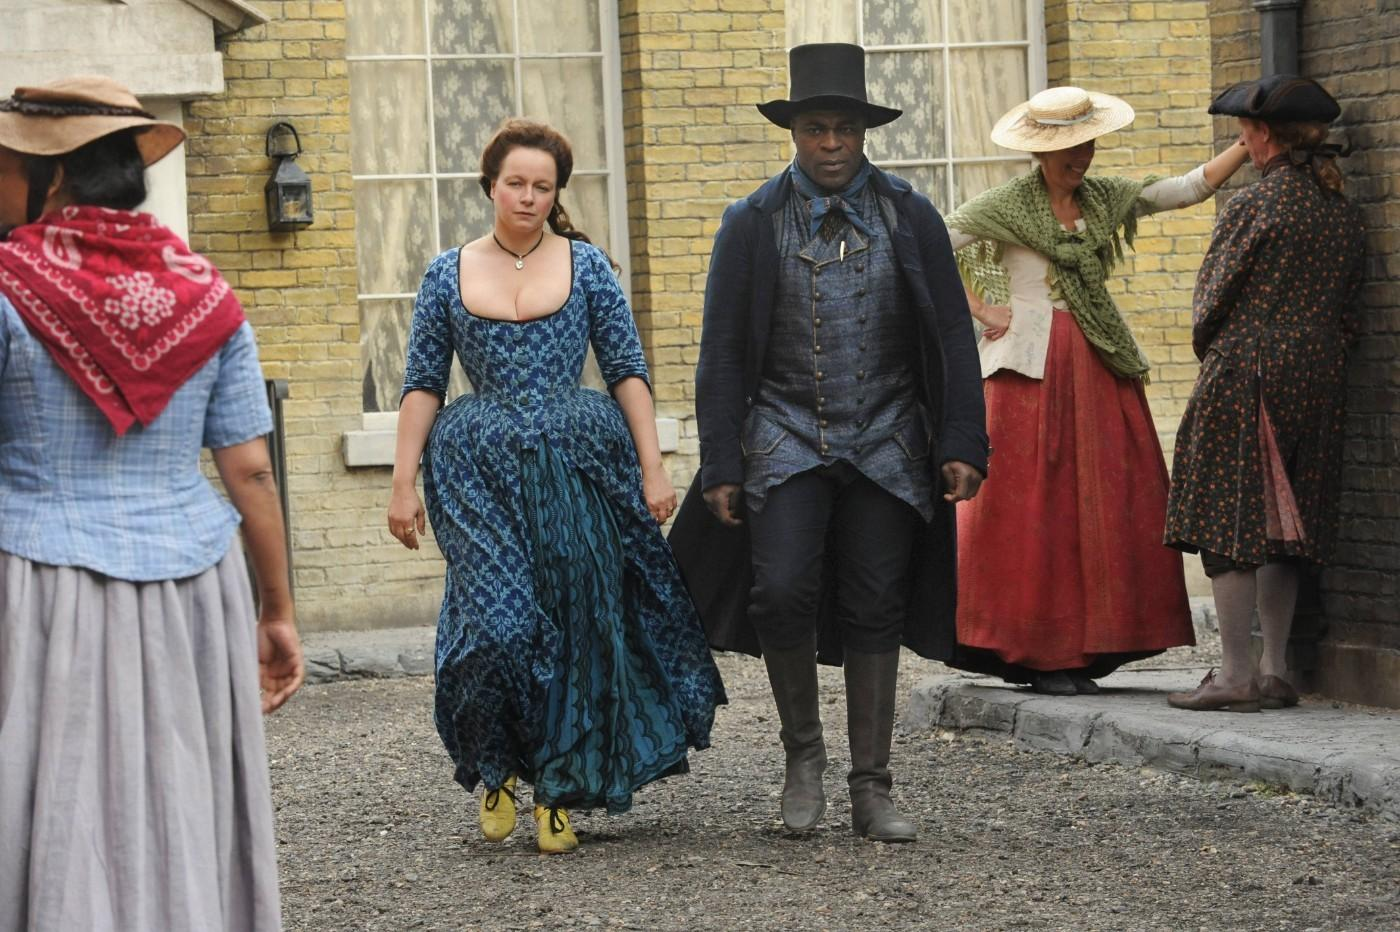 Samantha Morton (Margaret Wells) and Her Partner, William North (Danny Sapani), Harlots Episode 103, Costumes by Edward Gibbon